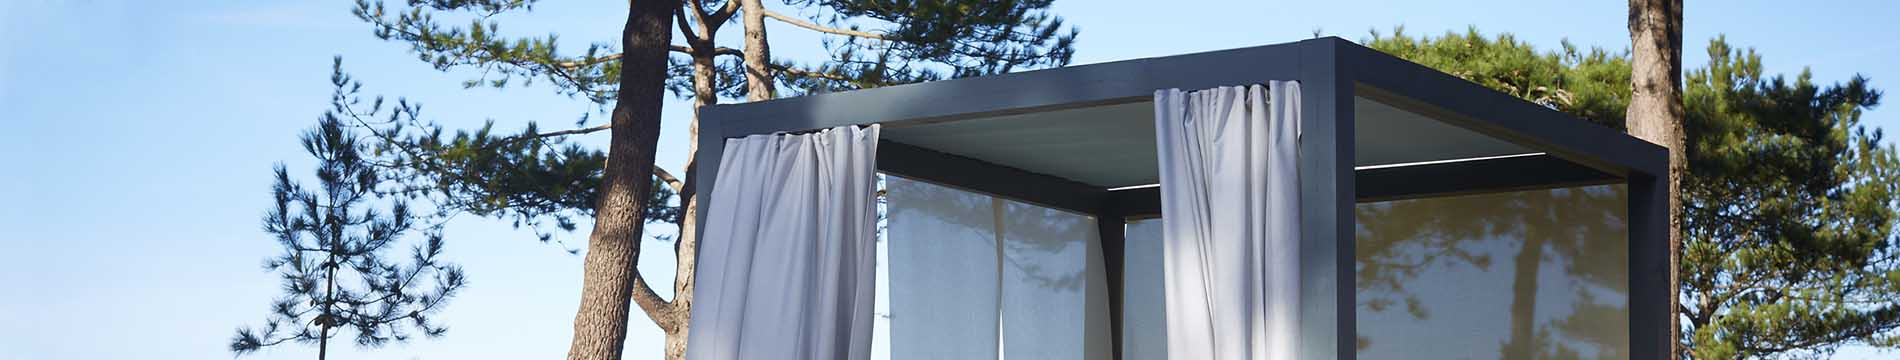 A pergola with Dickson curtains, gray tensioned fabric and side awnings